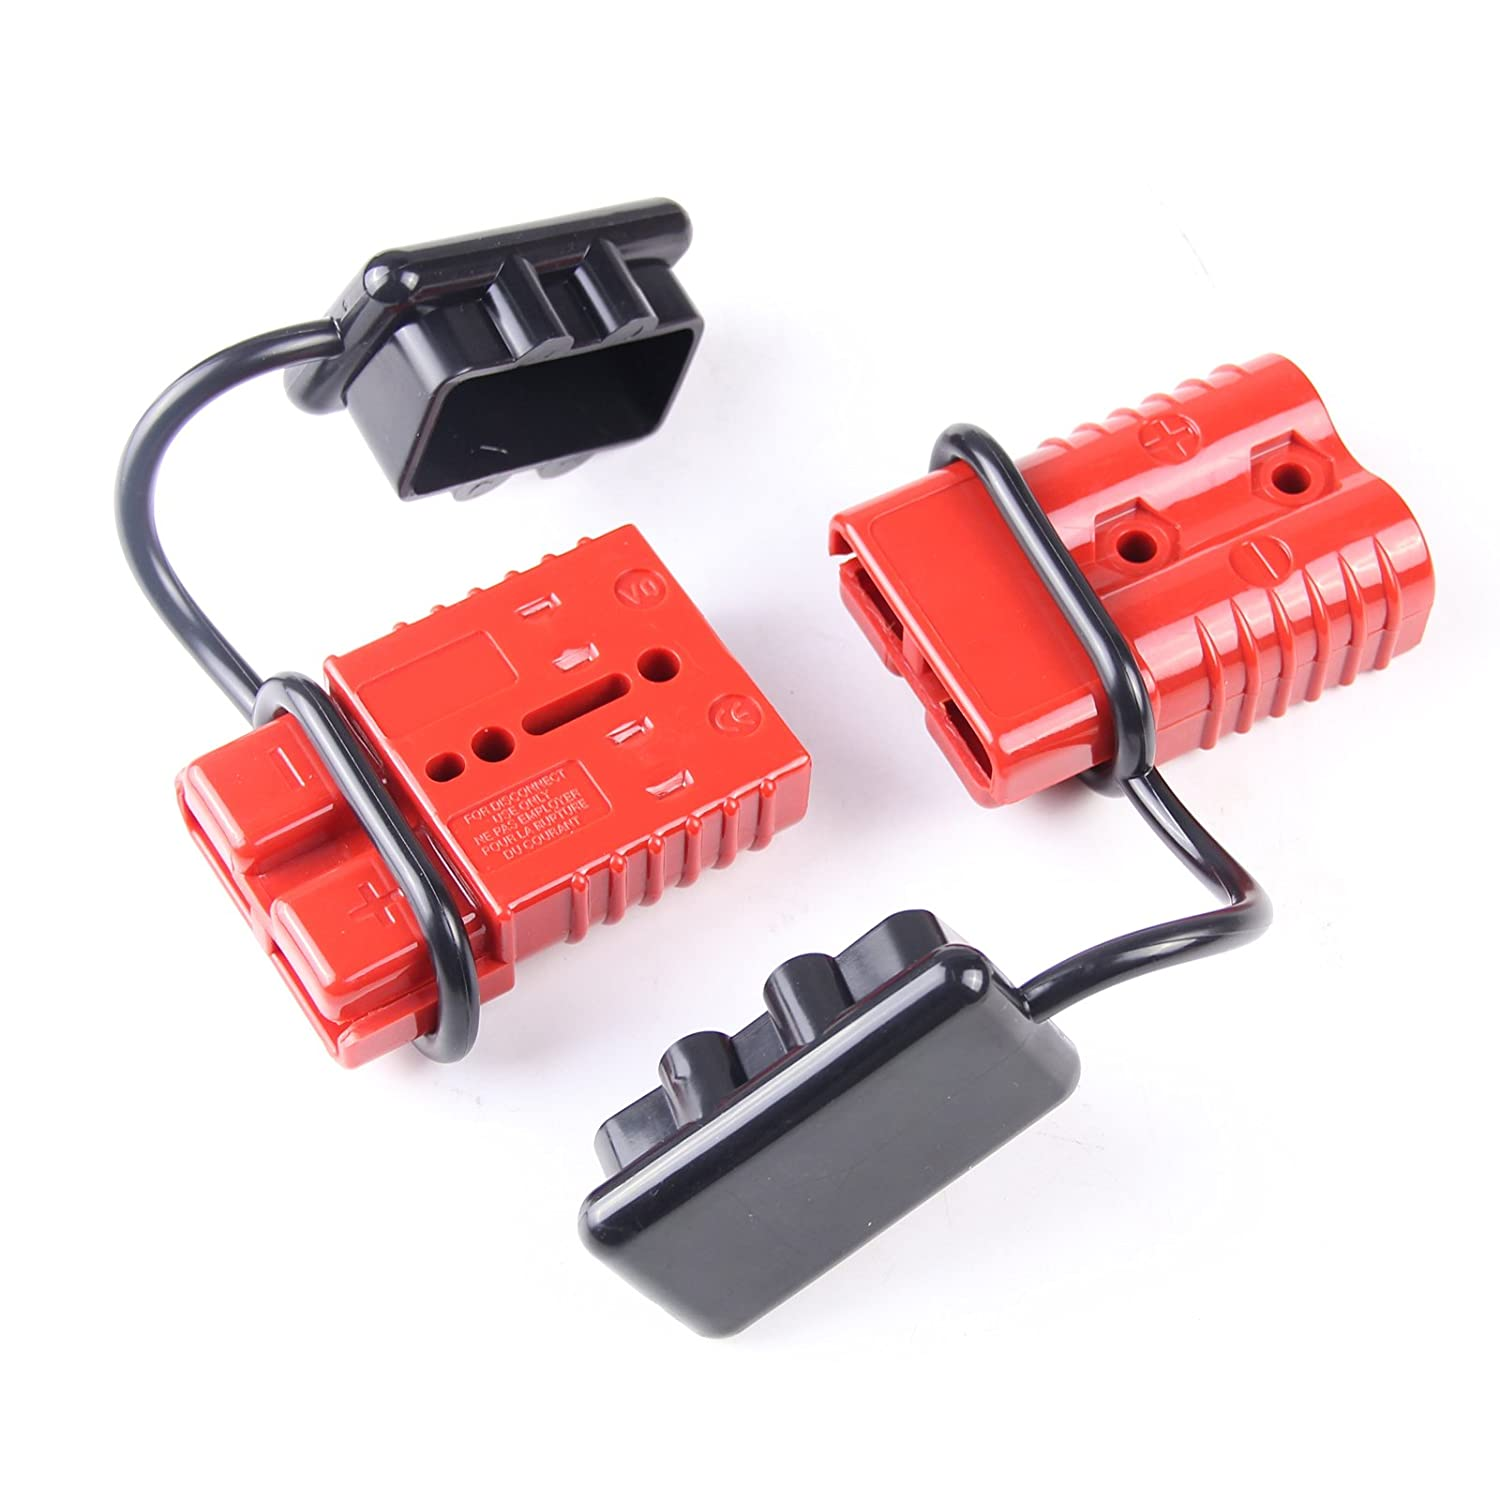 Aurelio Tech Universal 2-4 AWG 350A Battery Connect Quick Connector Plug for 12V Winch Trailer Driver Electrical Devices CECOMINOD050476